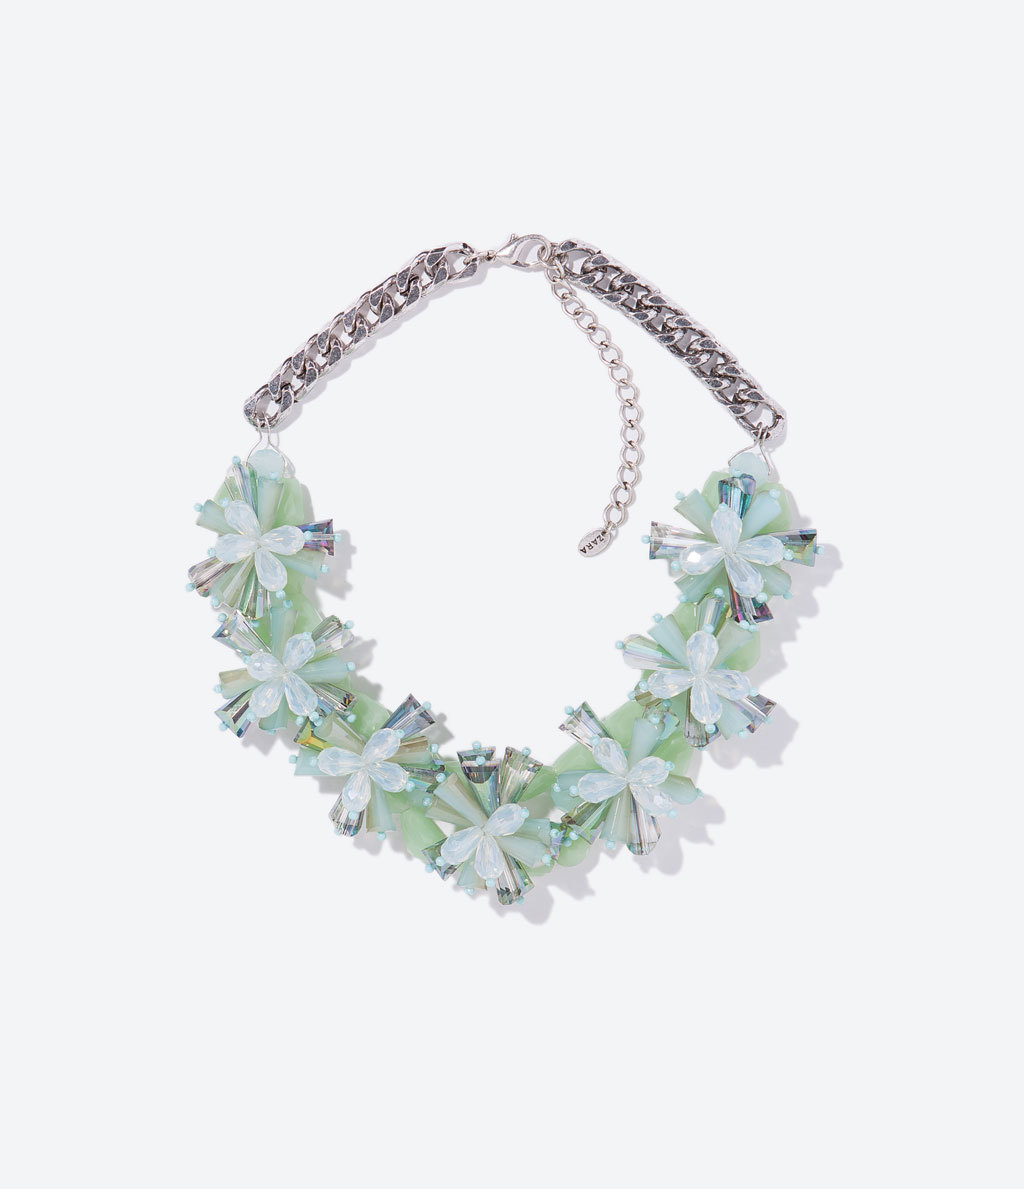 Flower Necklace - predominant colour: pistachio; secondary colour: silver; occasions: evening, occasion; length: short; size: large/oversized; material: chain/metal; finish: metallic; embellishment: jewels/stone; style: bib/statement; season: s/s 2014